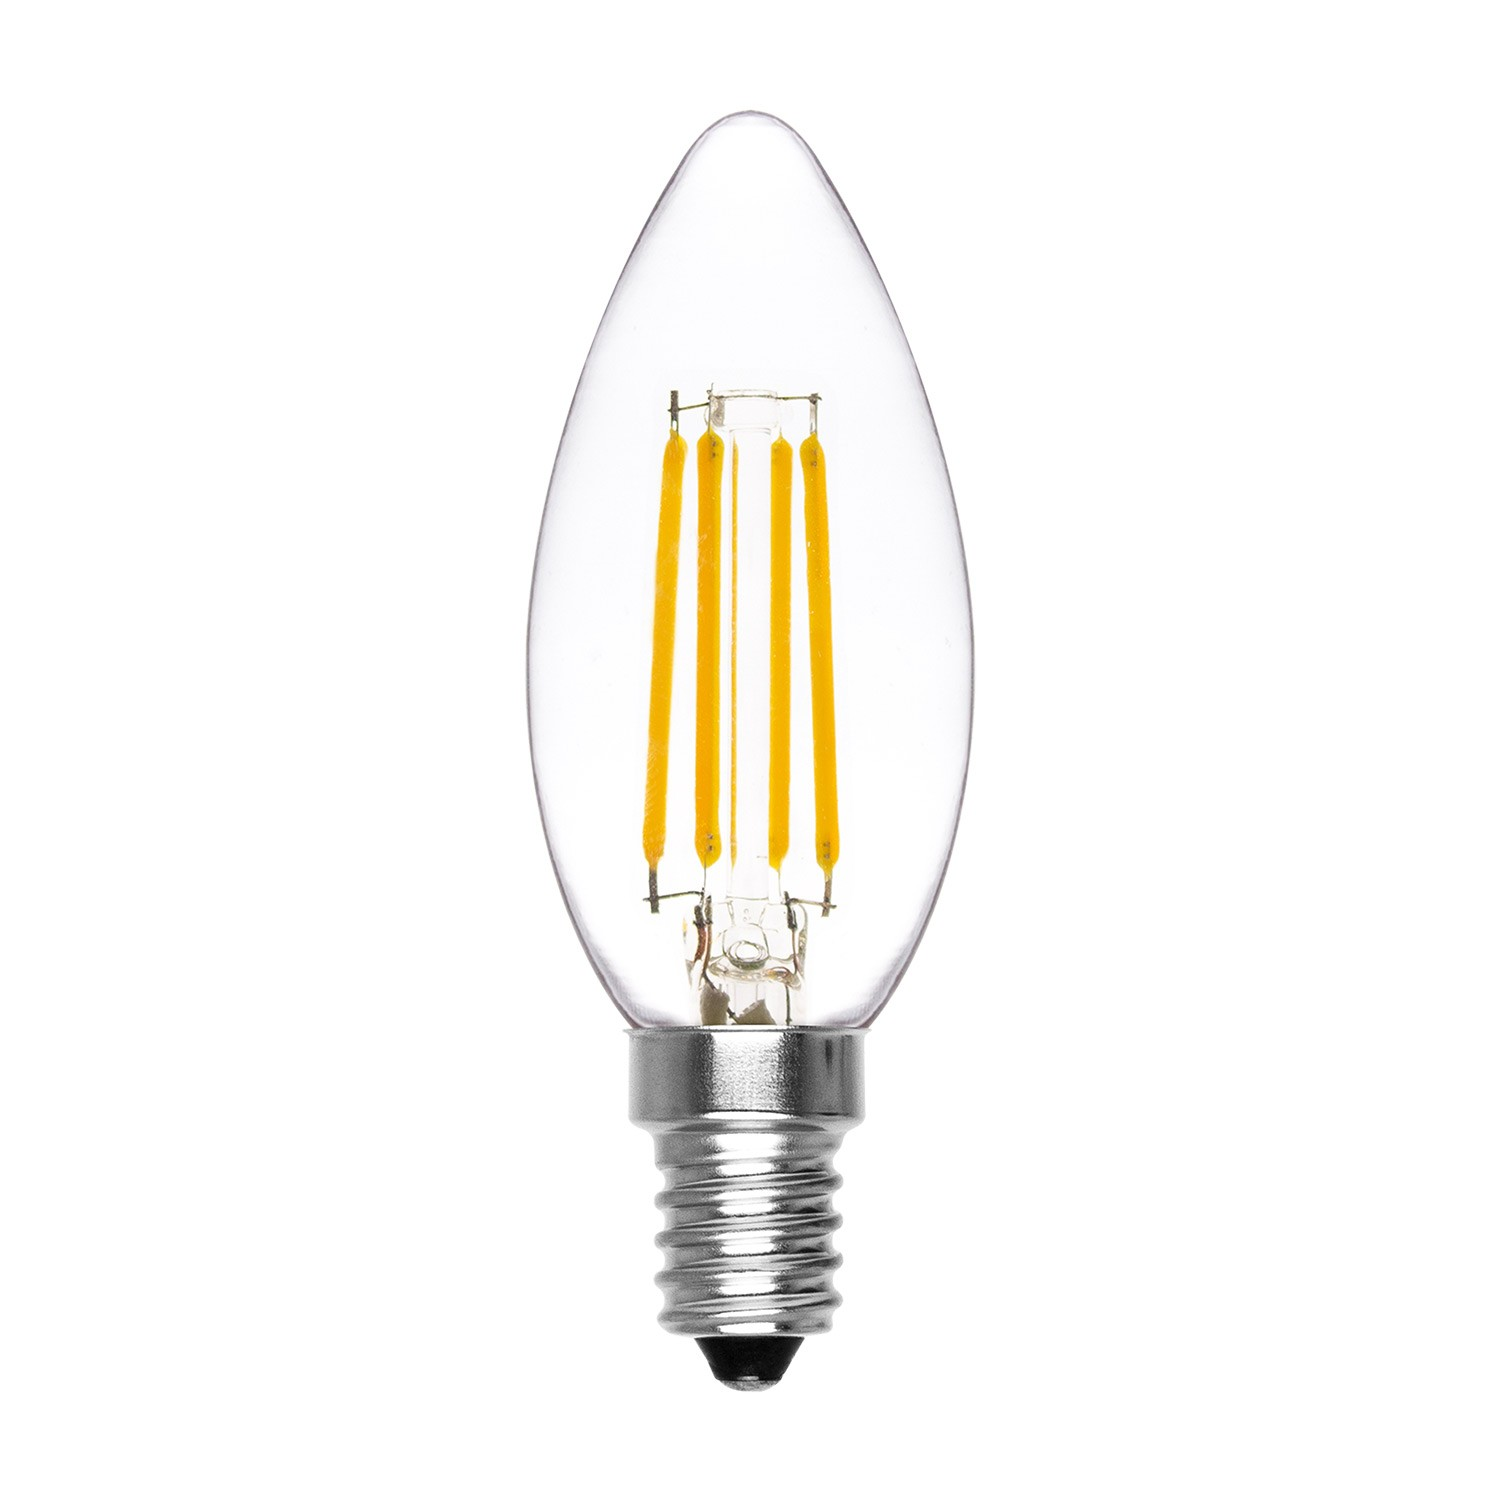 Chand Bulb, gallery image 1